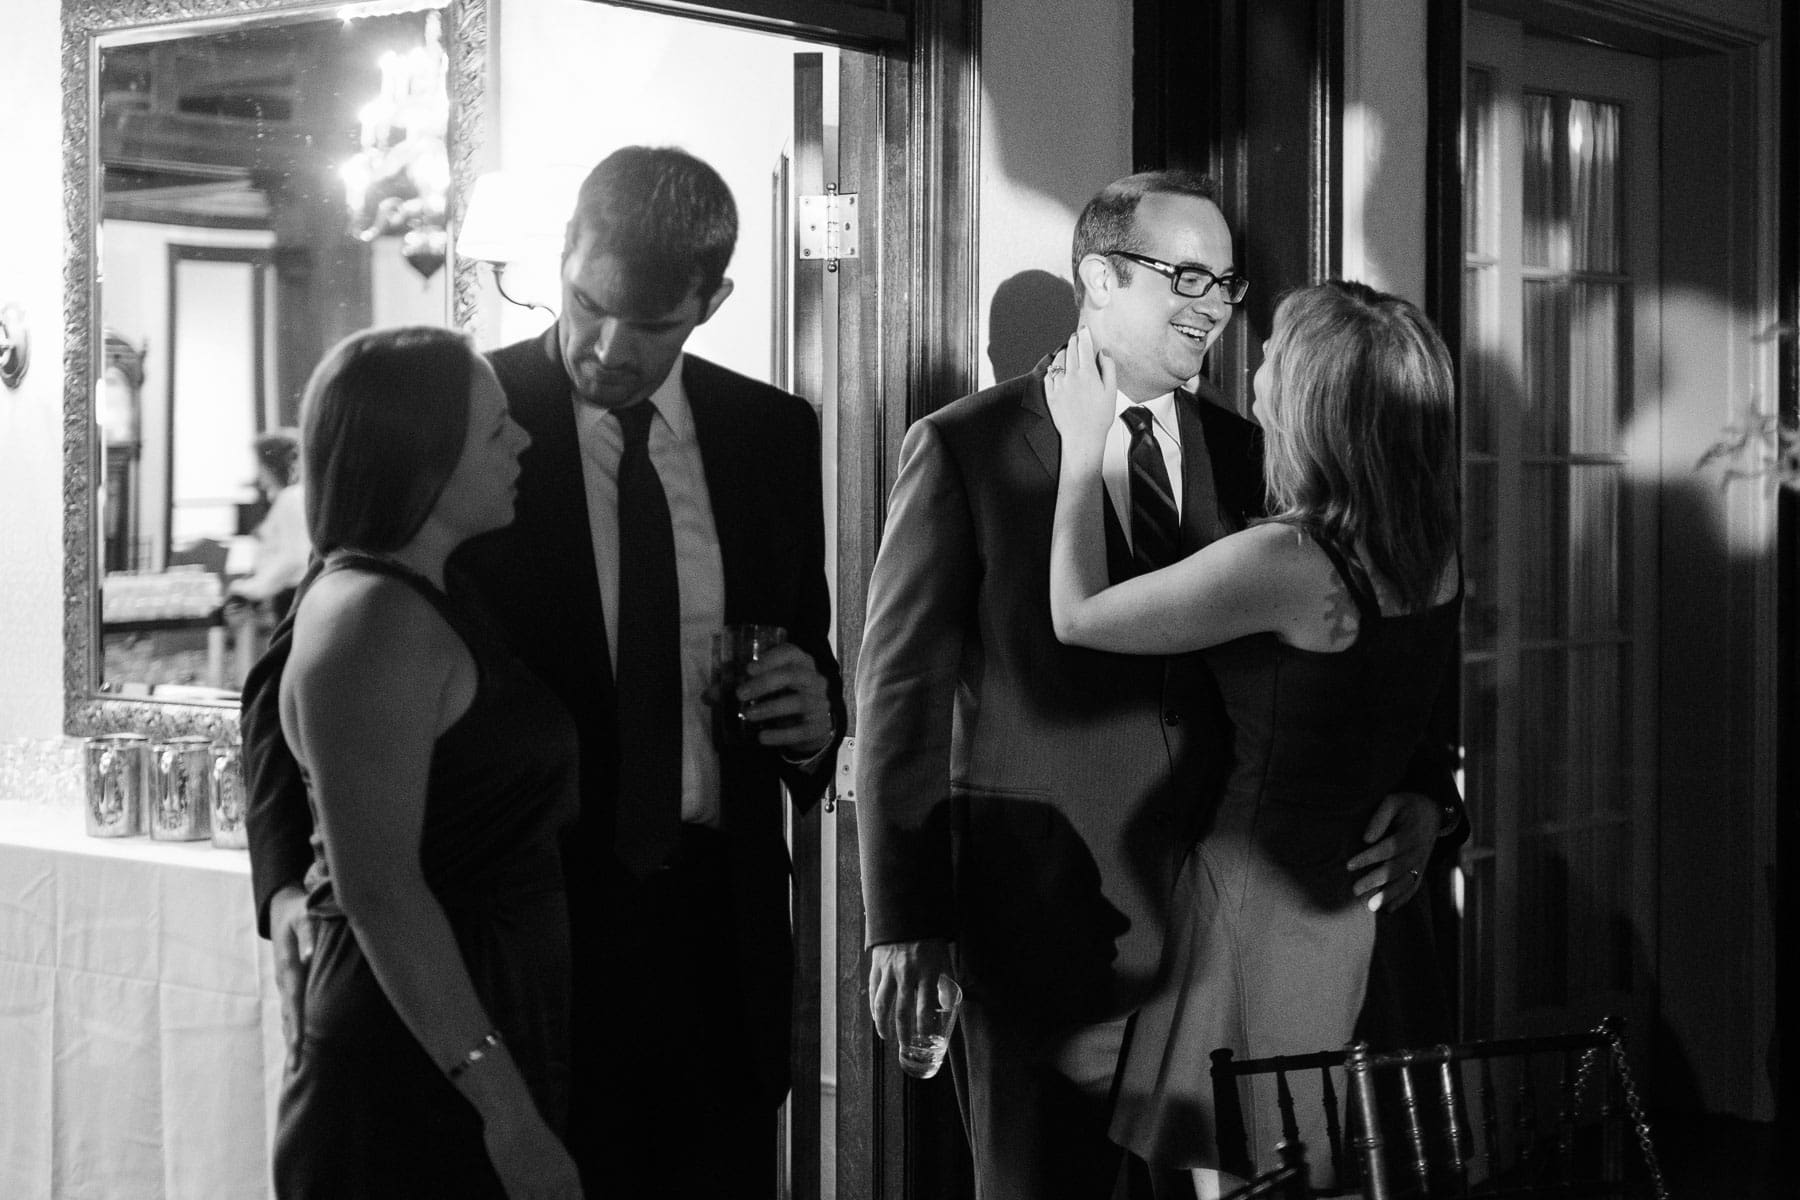 Two pairs of guests share an intimate moment by a door at the Boulevard Club wedding.